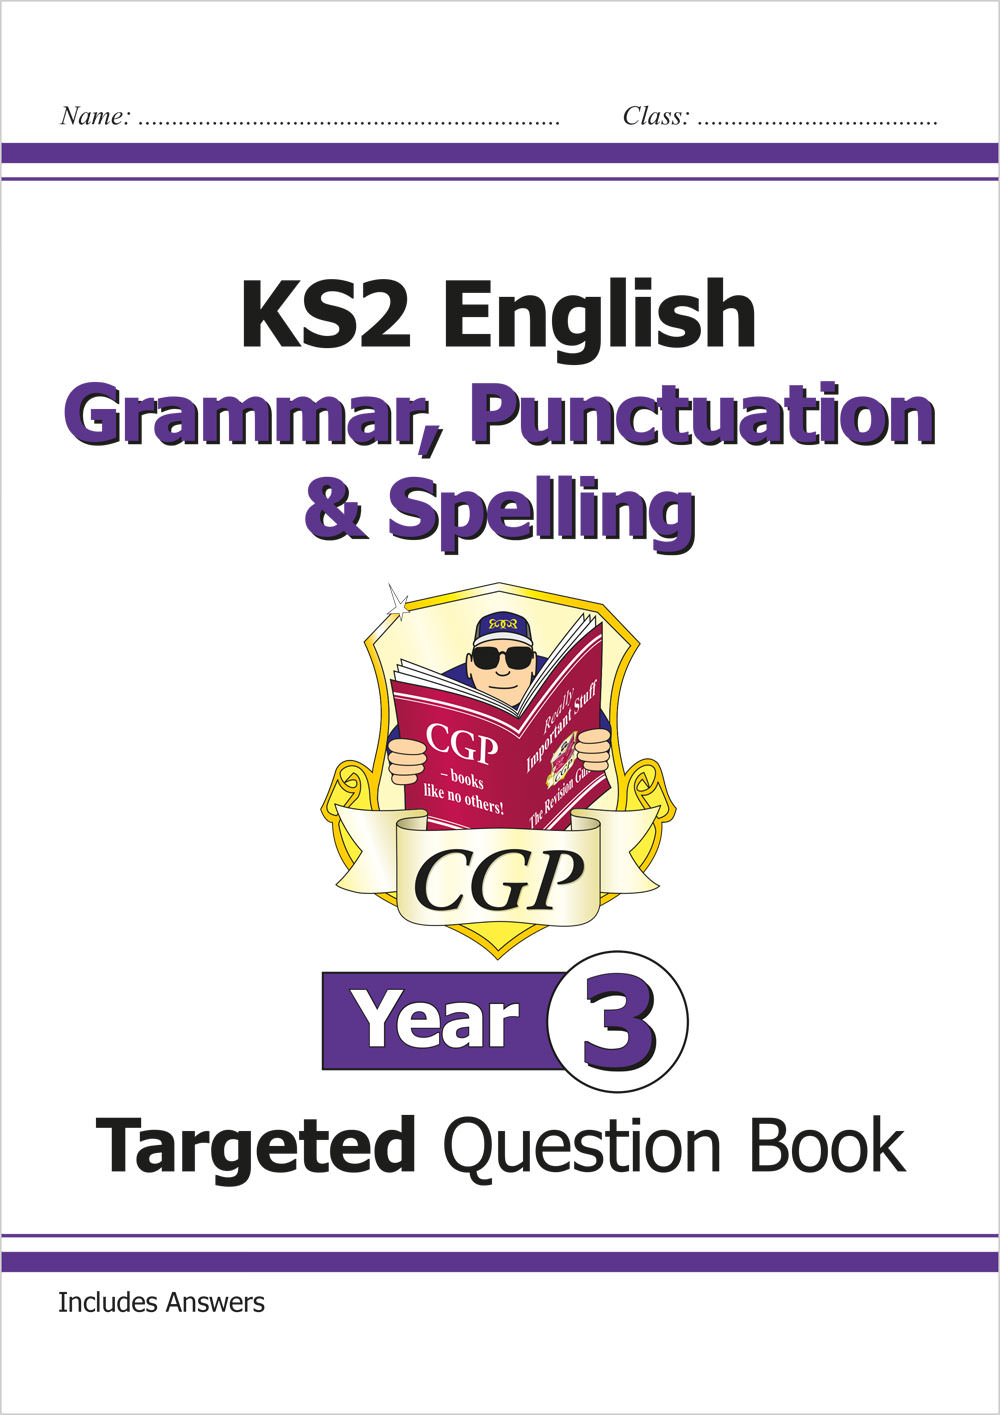 E3W22 - KS2 English Targeted Question Book: Grammar, Punctuation & Spelling - Year 3